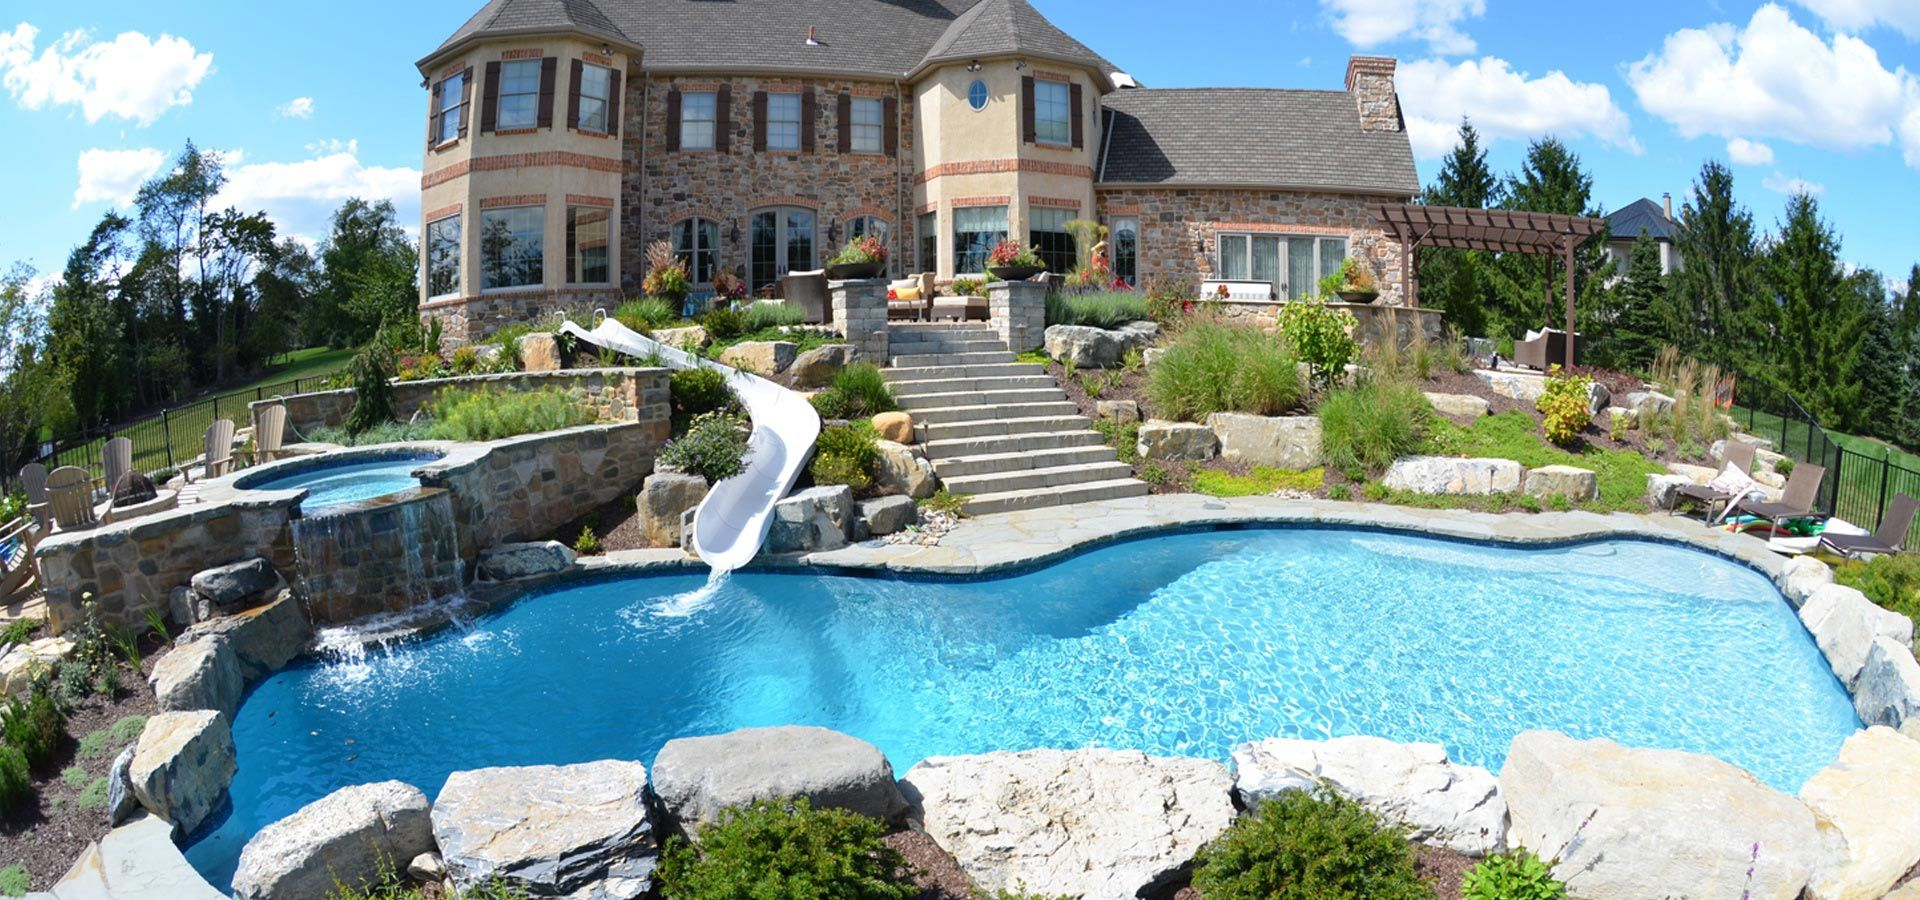 Custom pool with waterslide spa diamond brite finish for Pictures of backyard pools